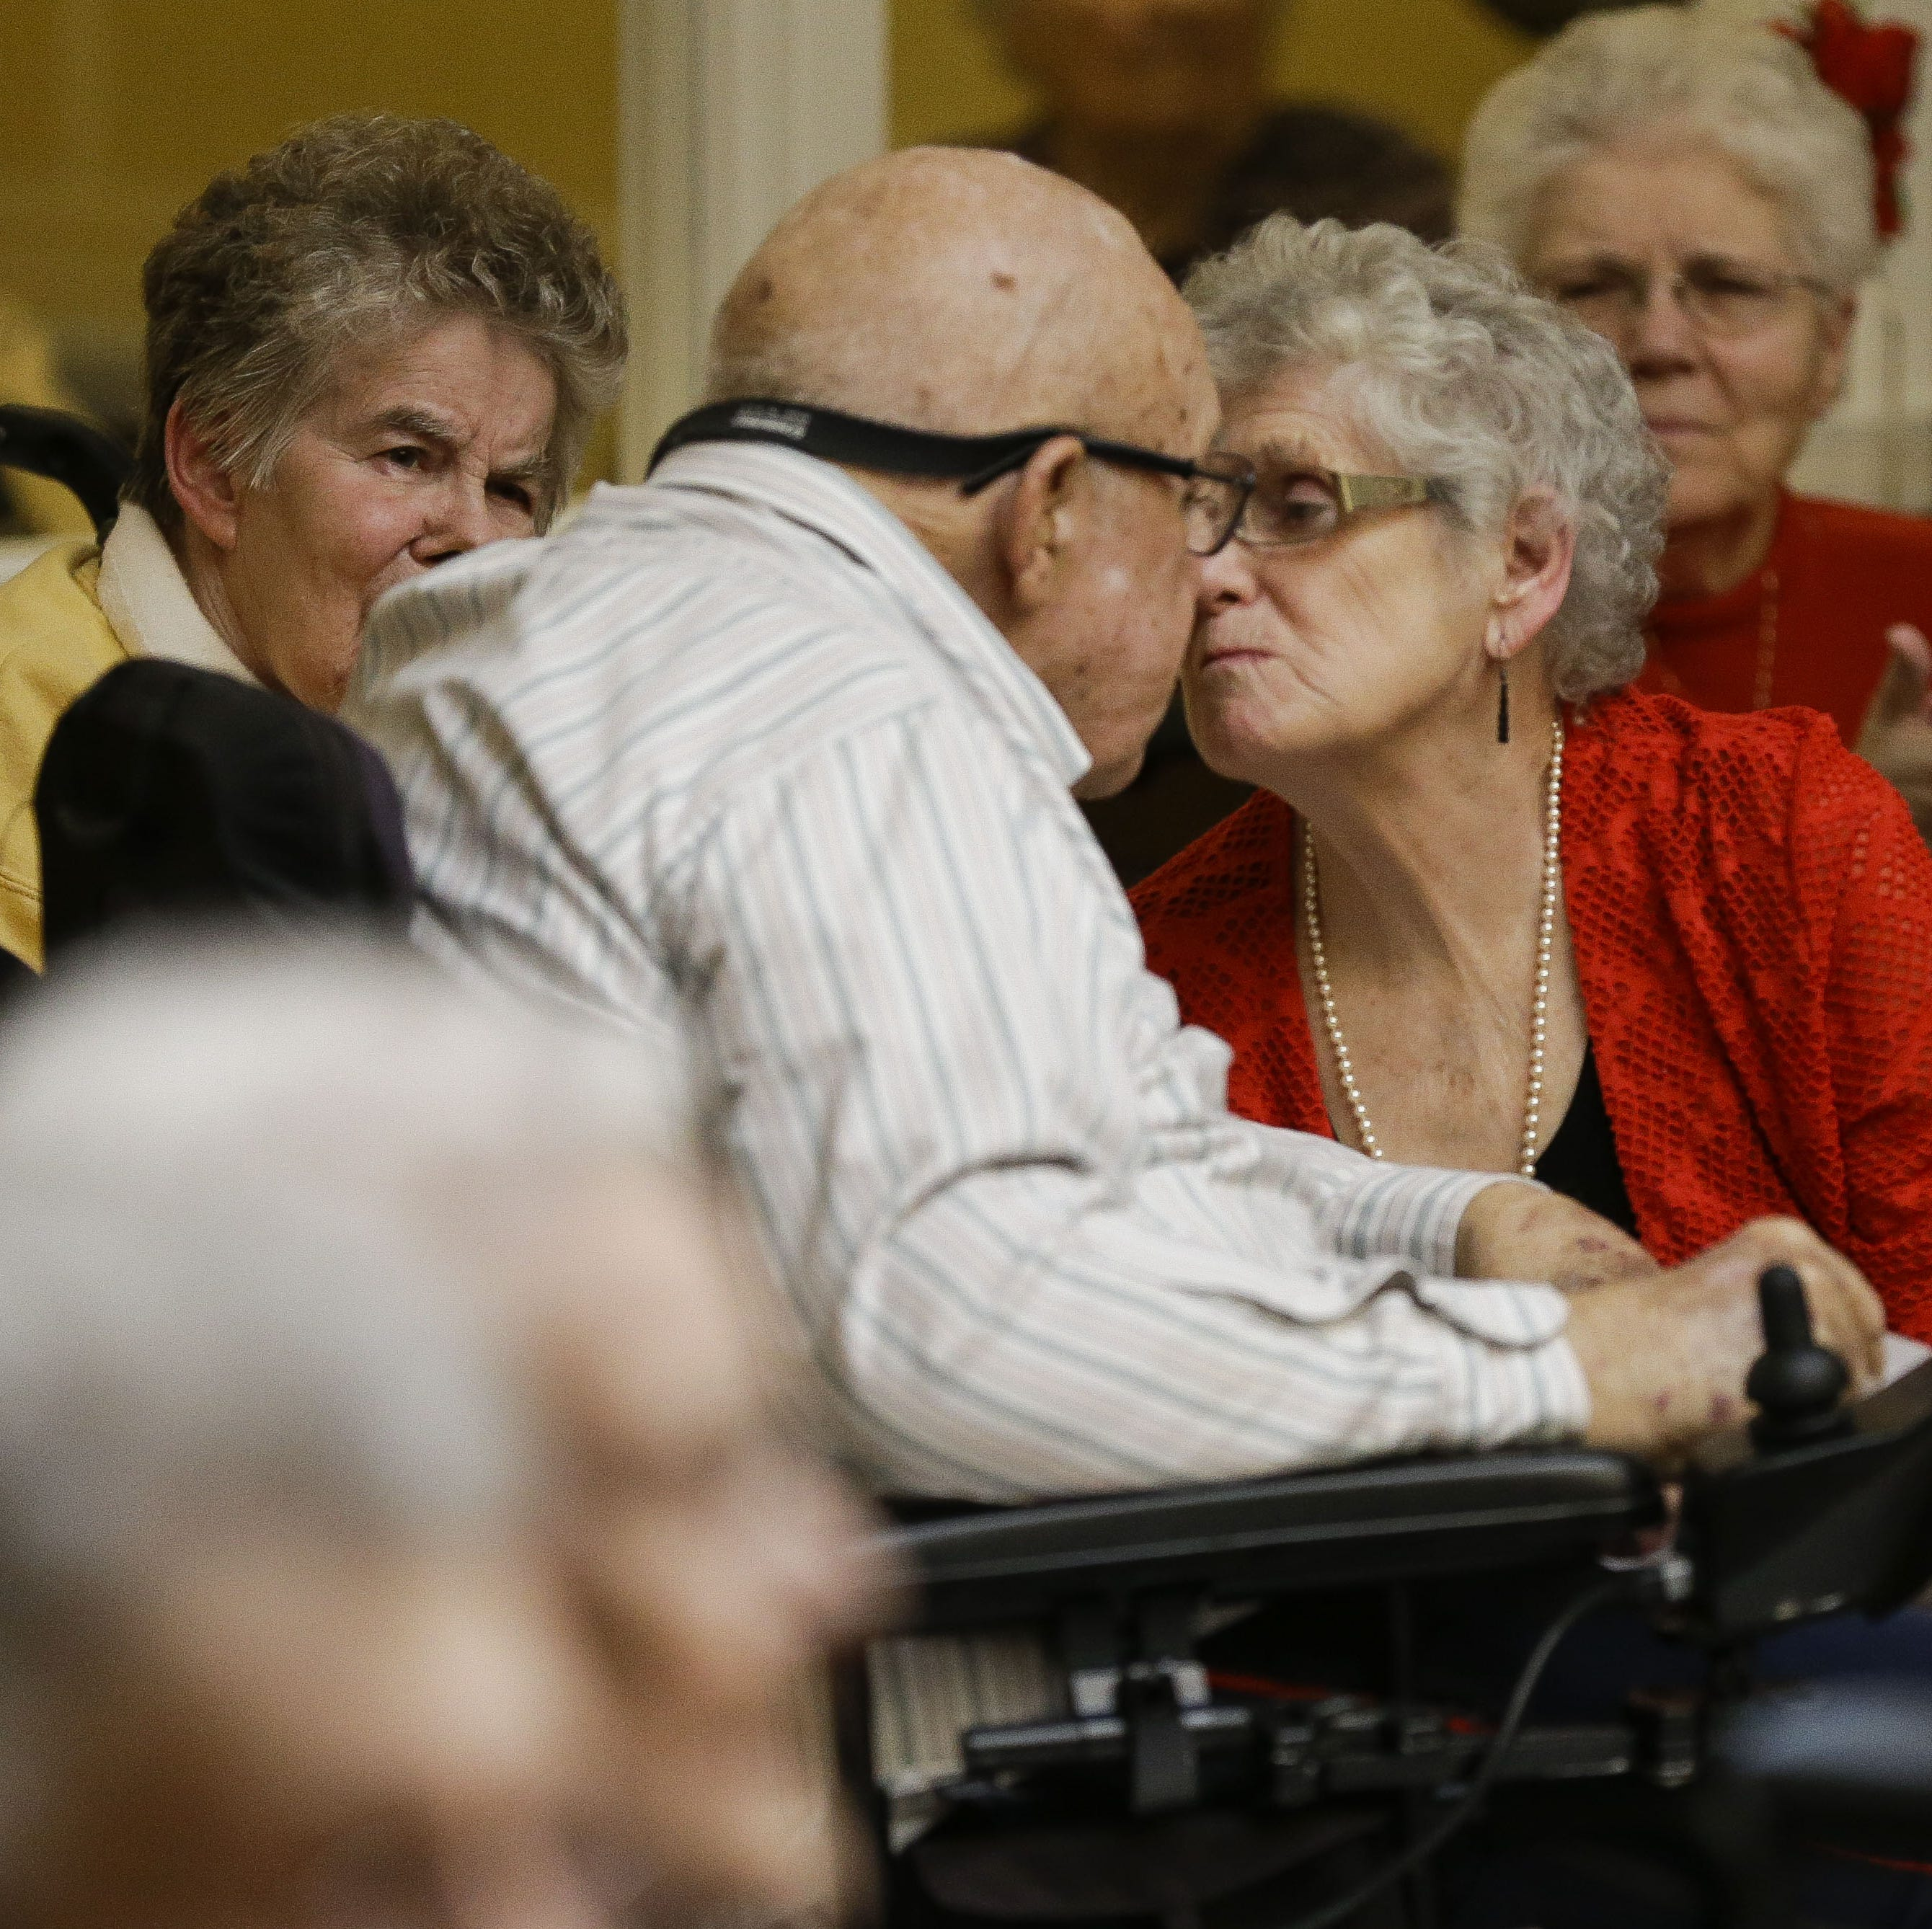 These six couples renewed their vows on Valentine's Day at a Marshfield assisted-living home